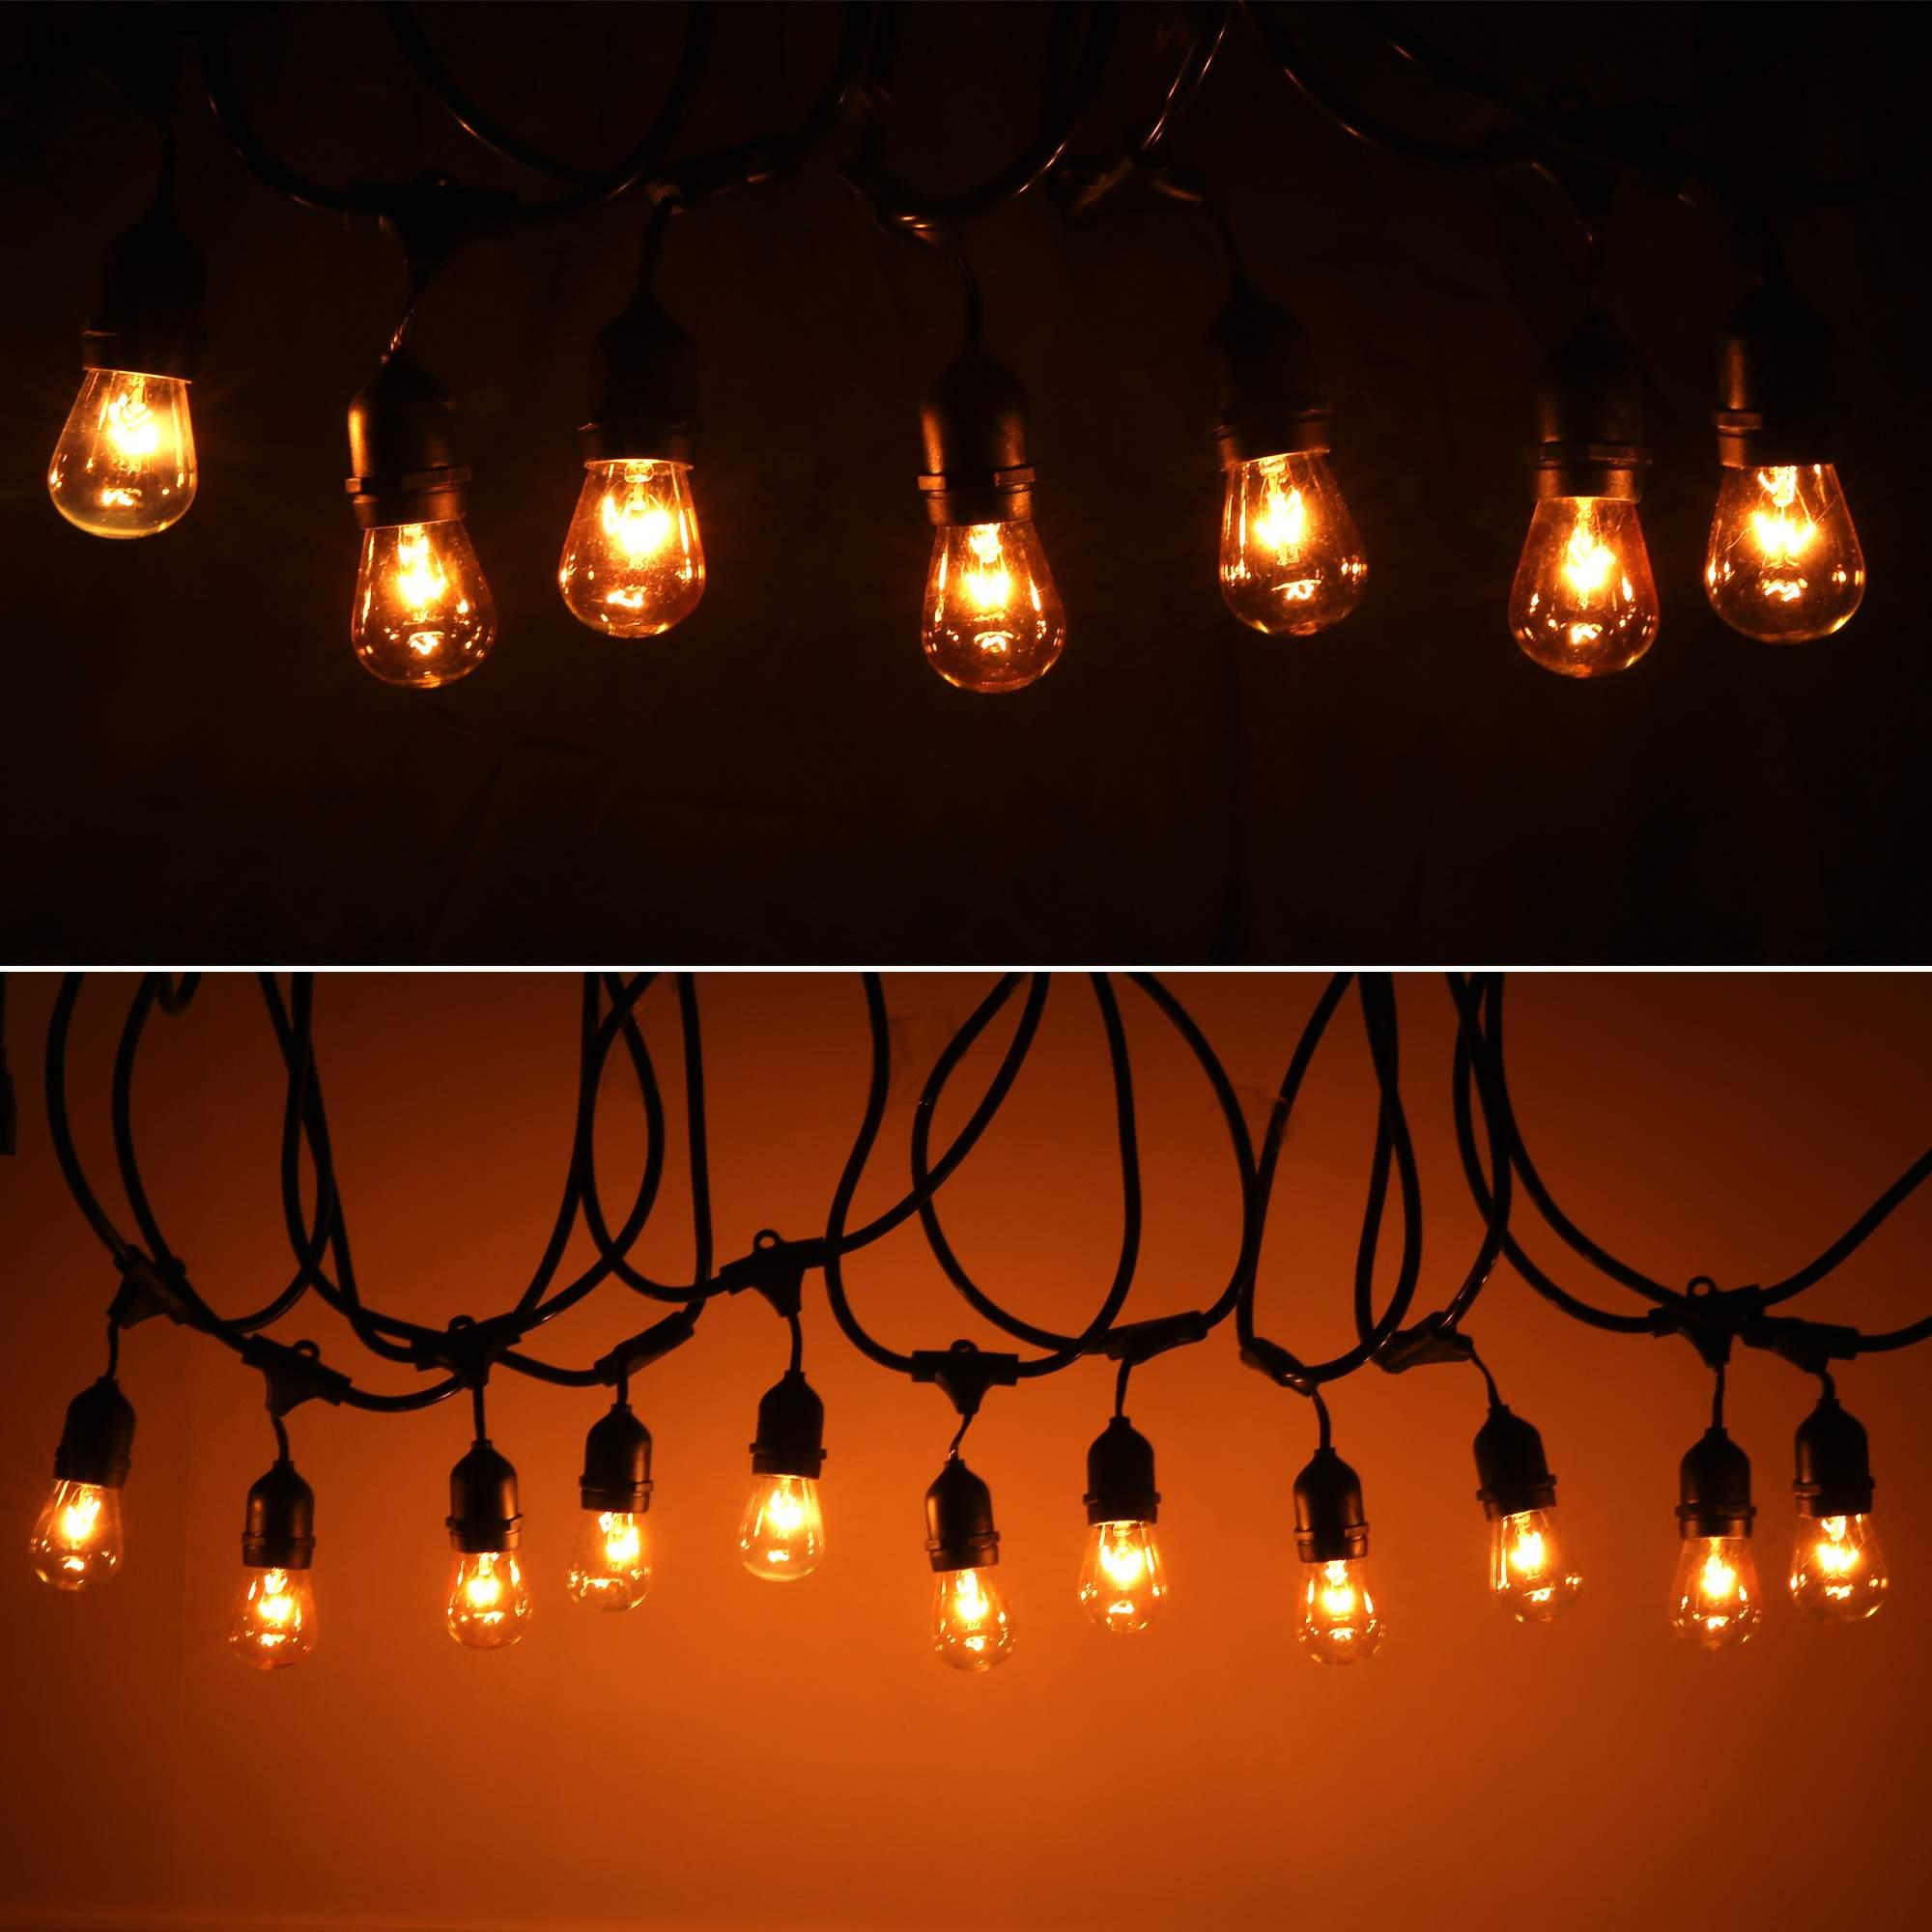 48 Foot Vintage Indoor Outdoor Patio String Lights 15x E26 Bulbs Included EHE8 eBay